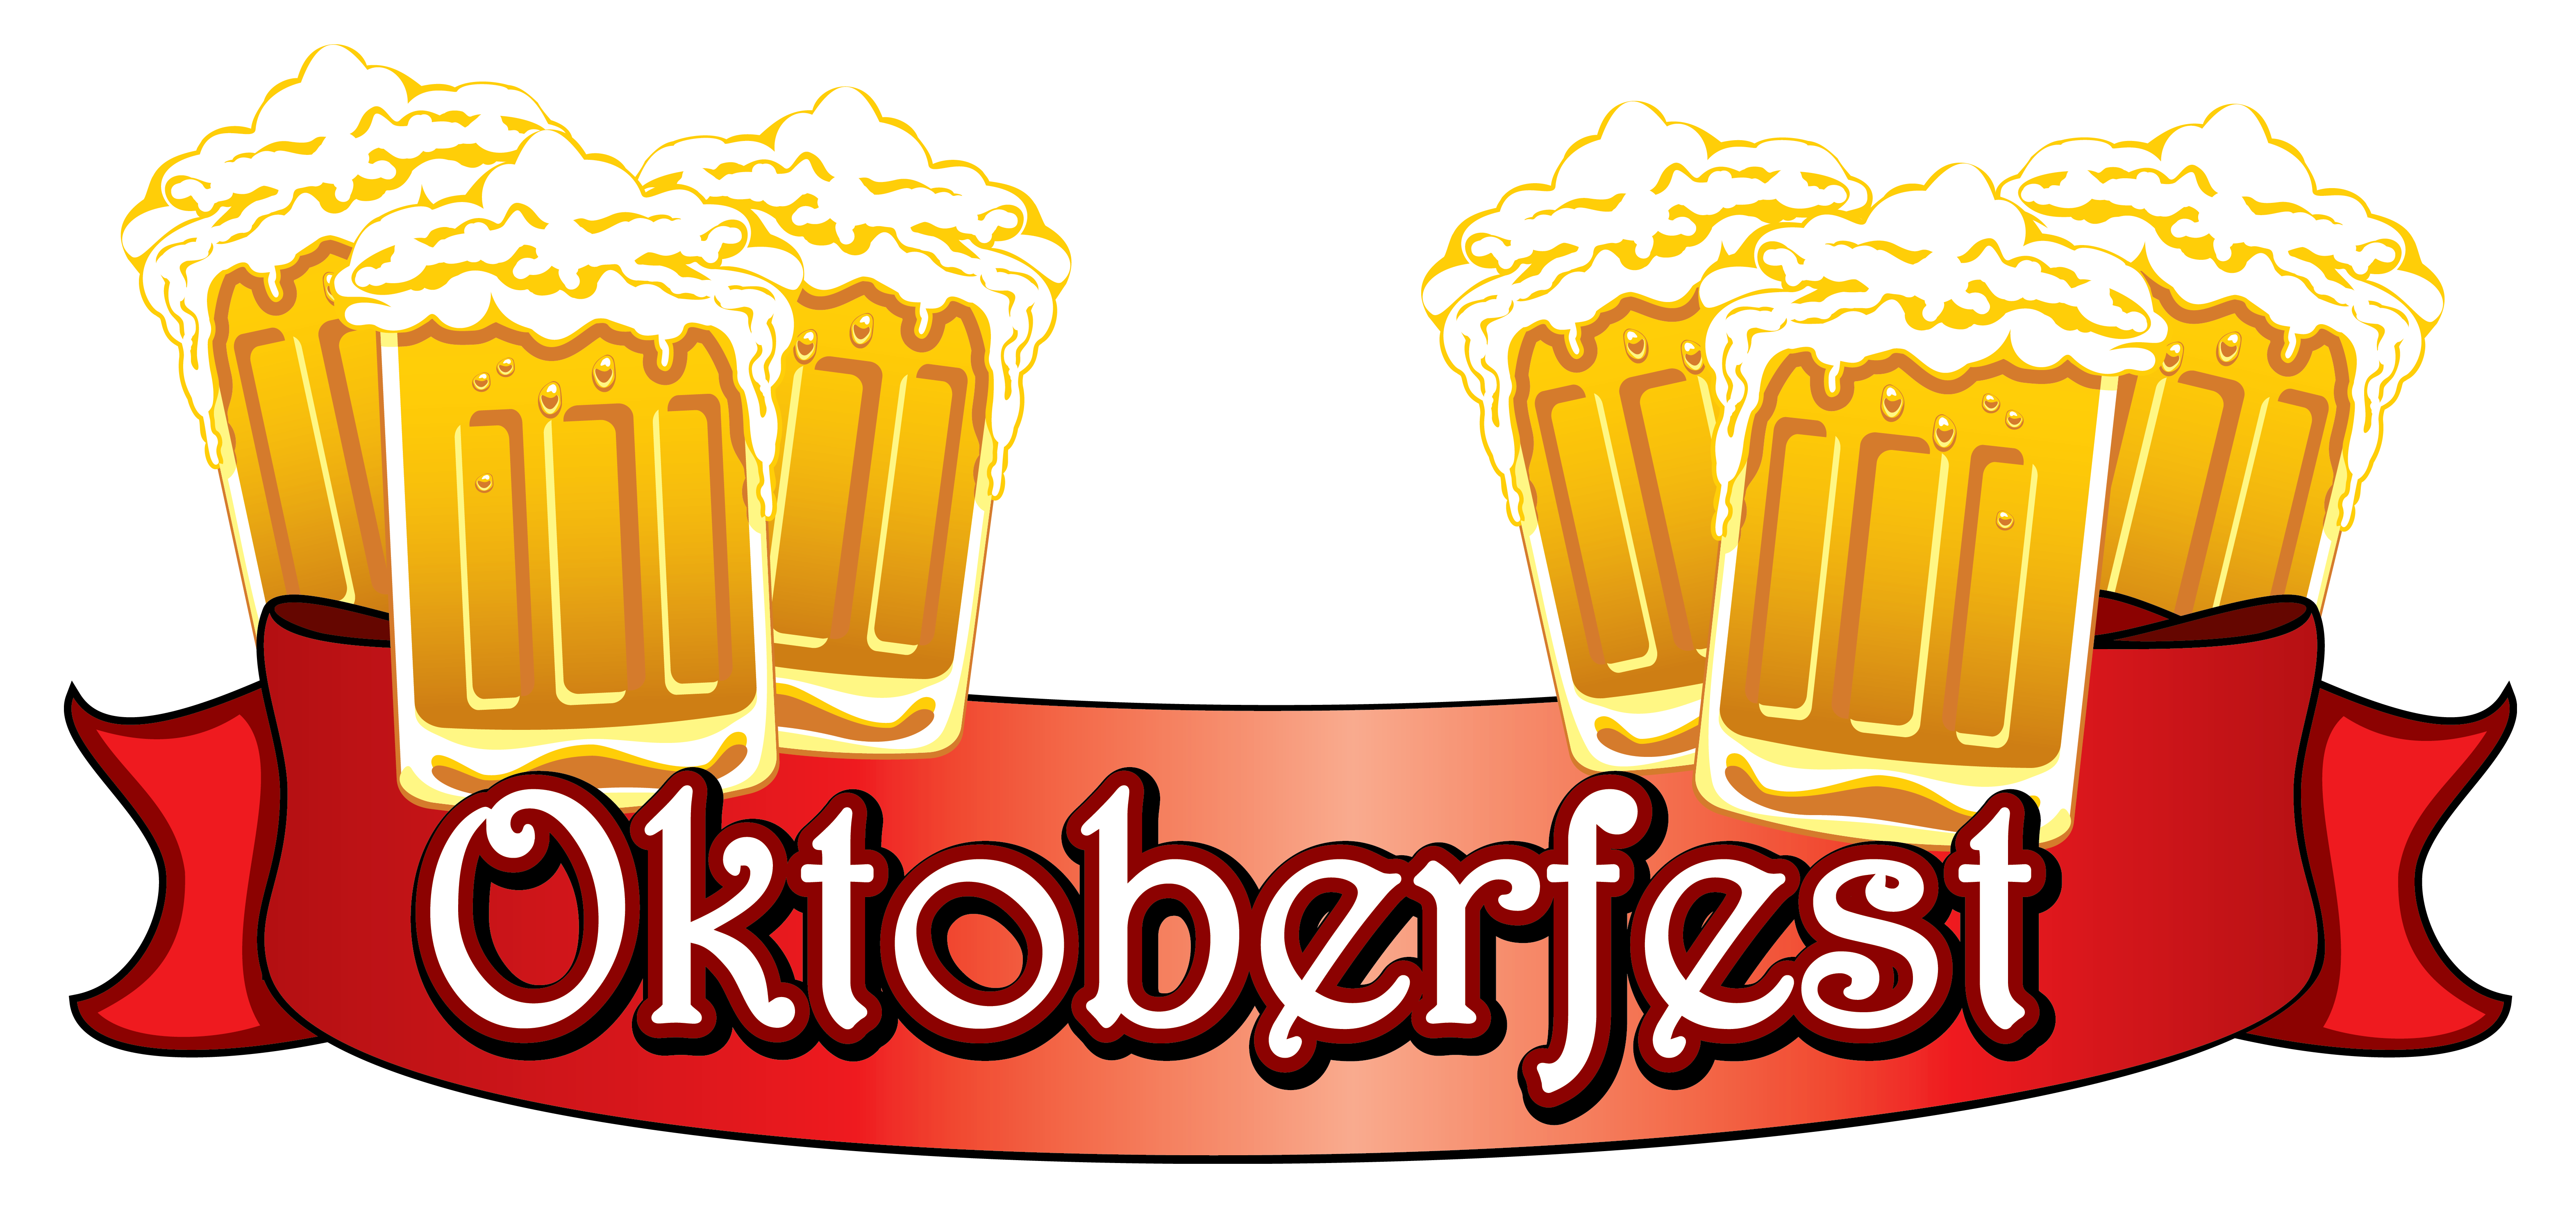 Clipart food banner. Oktoberfest red with beers